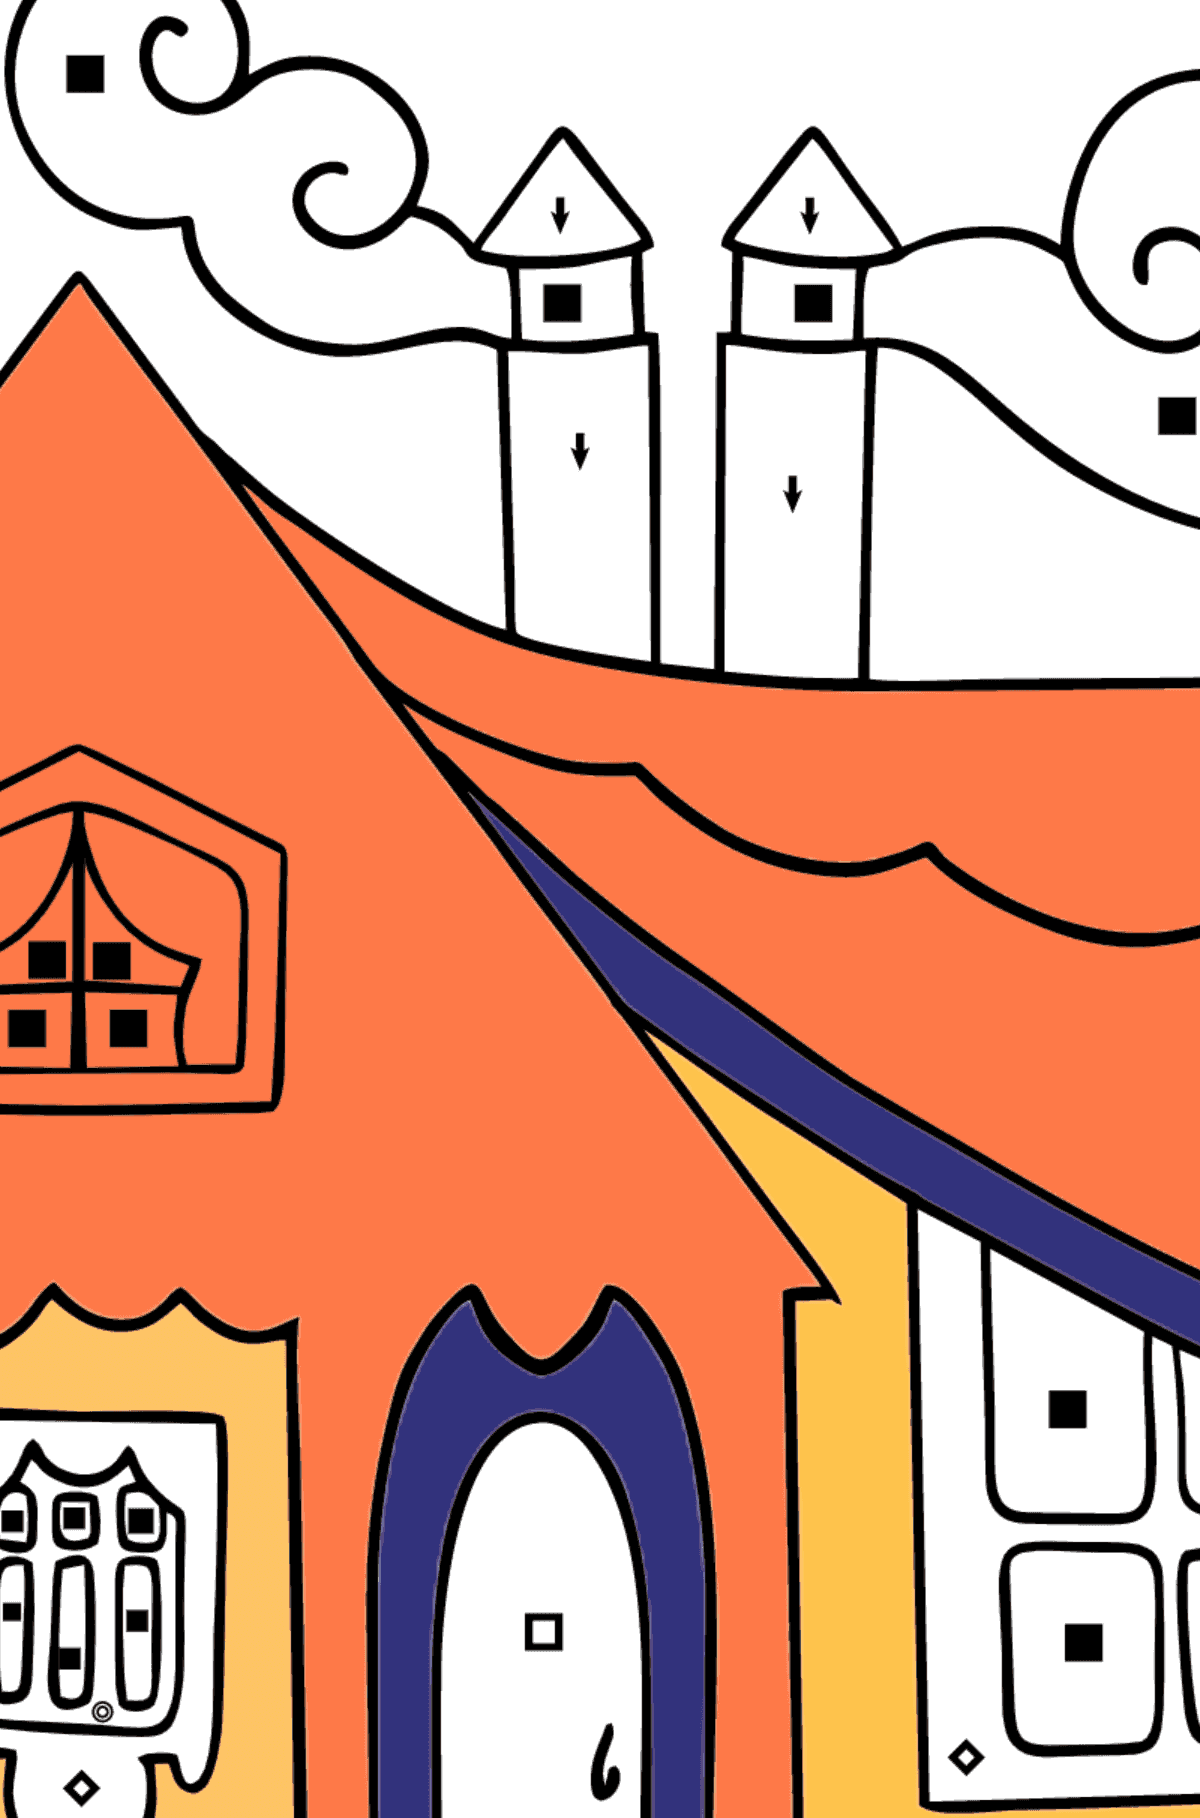 Simple Coloring Page - A Tiny House for Kids  - Color by Symbols and Geometric Shapes